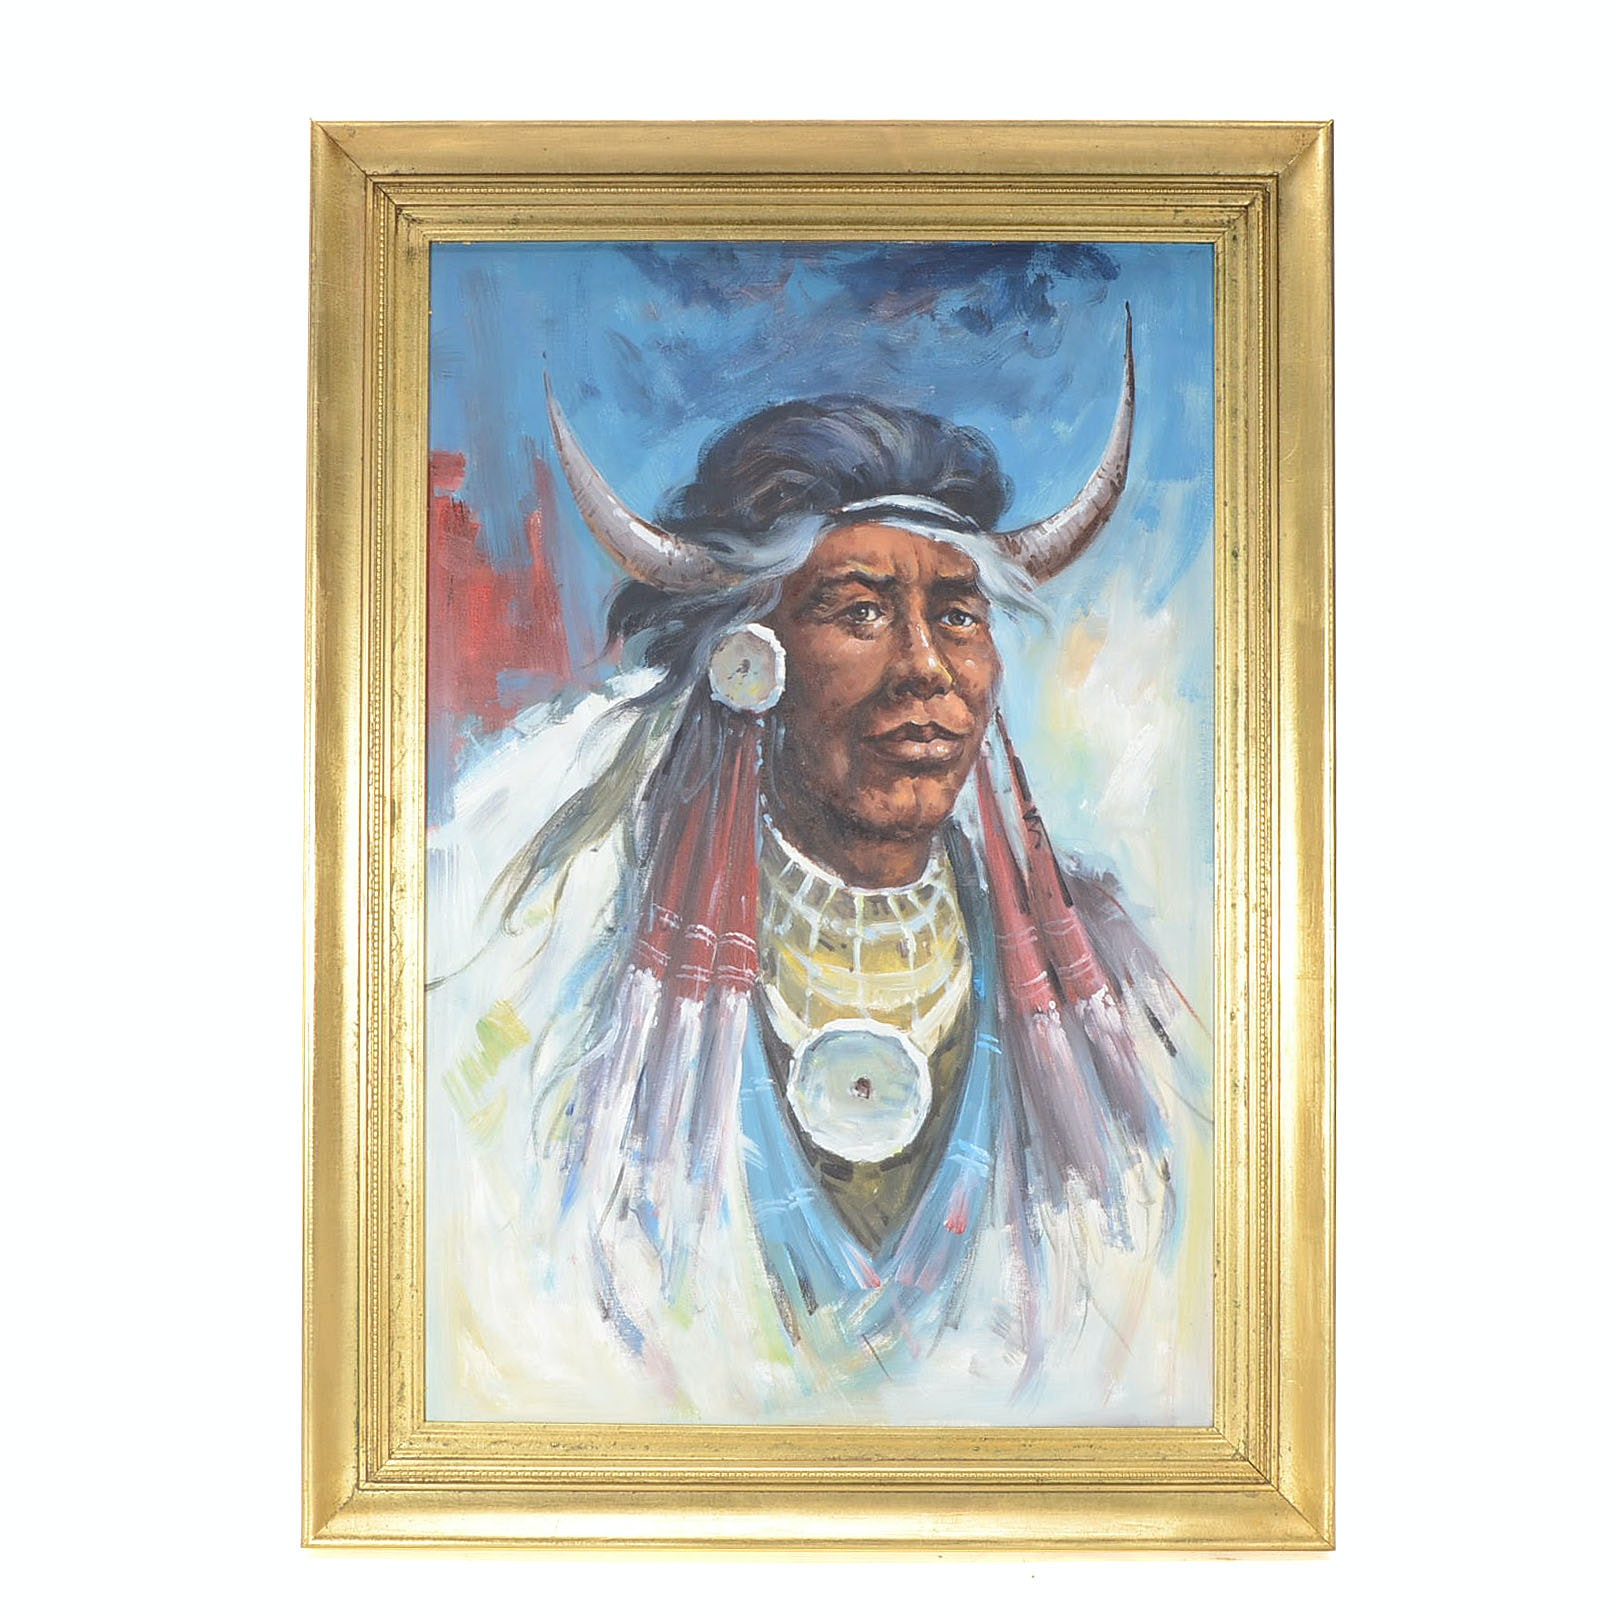 Original Oil Portrait Painting on Canvas of Native American